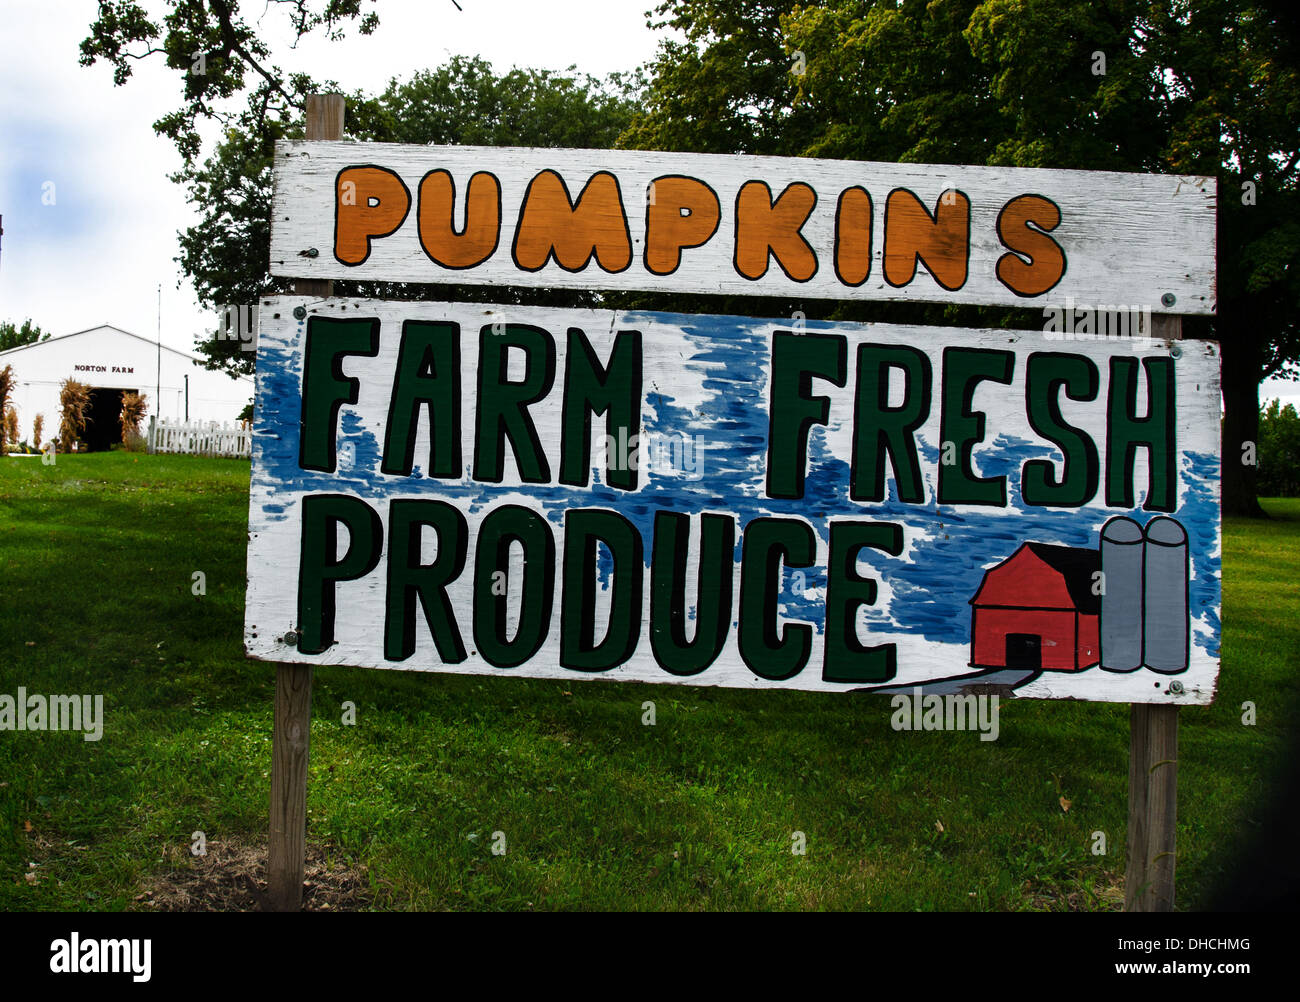 Sign for Pumpkins and Produce for sale at Norton Farm near St. Charles, Illinois, a town along the Lincoln Highway - Stock Image